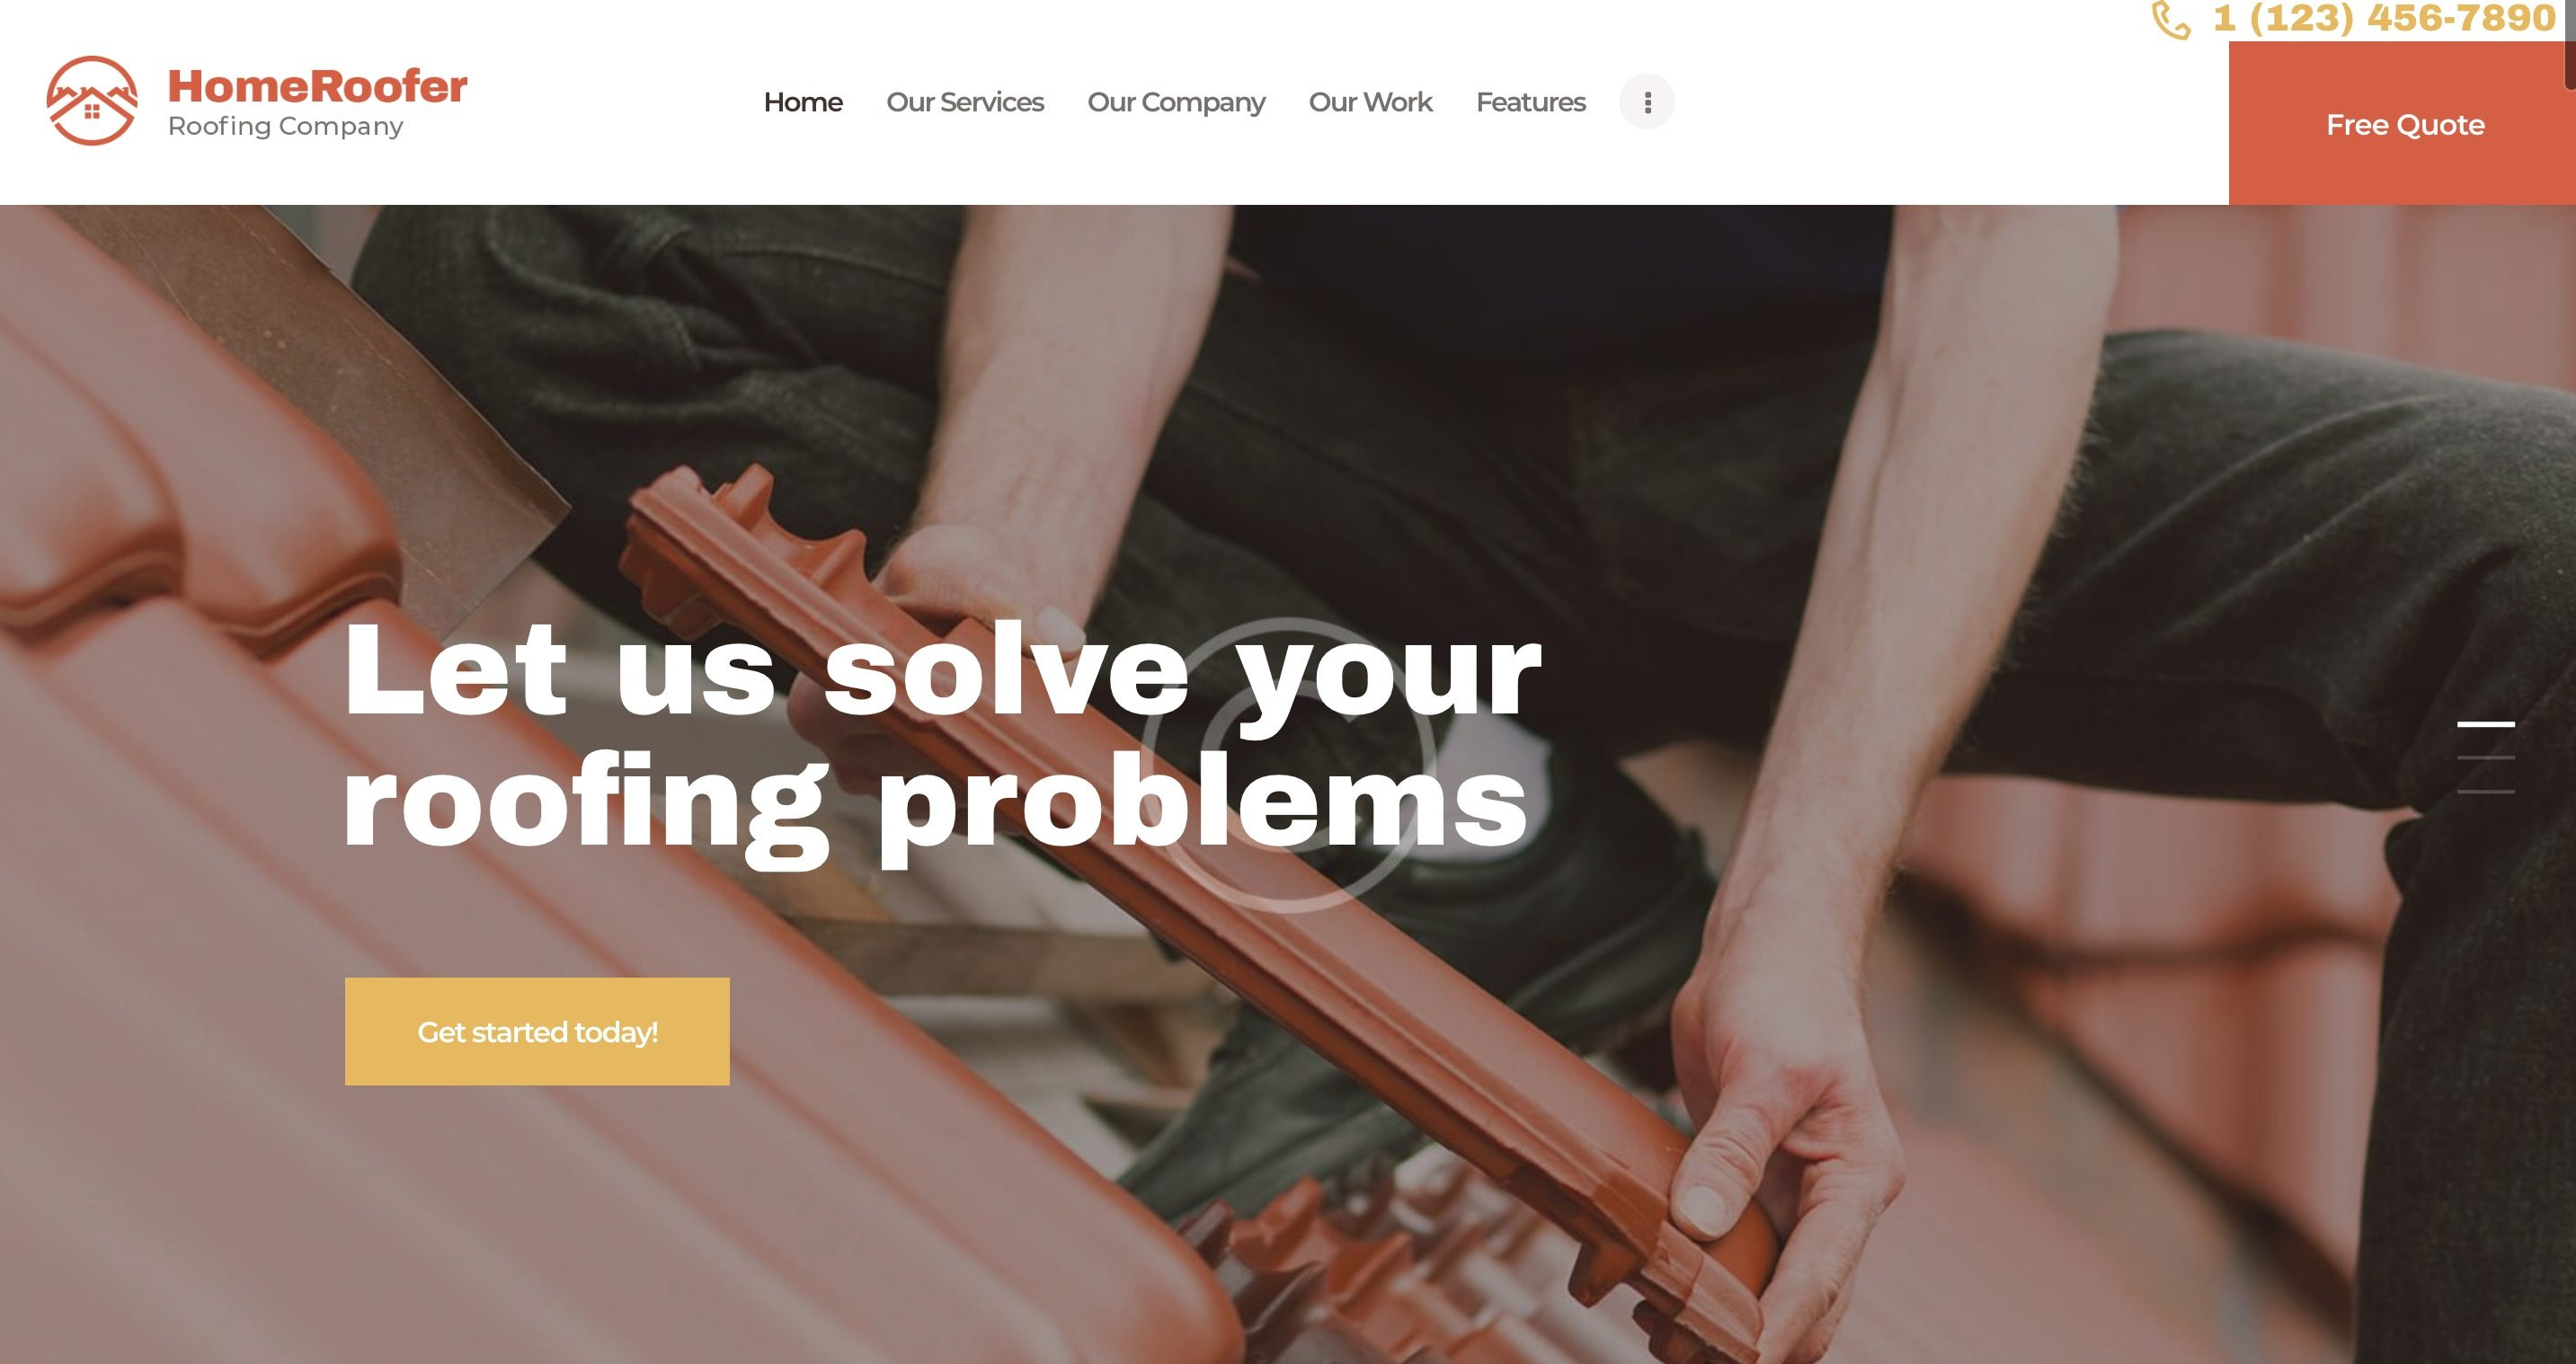 Services Pro Roofing Company Website